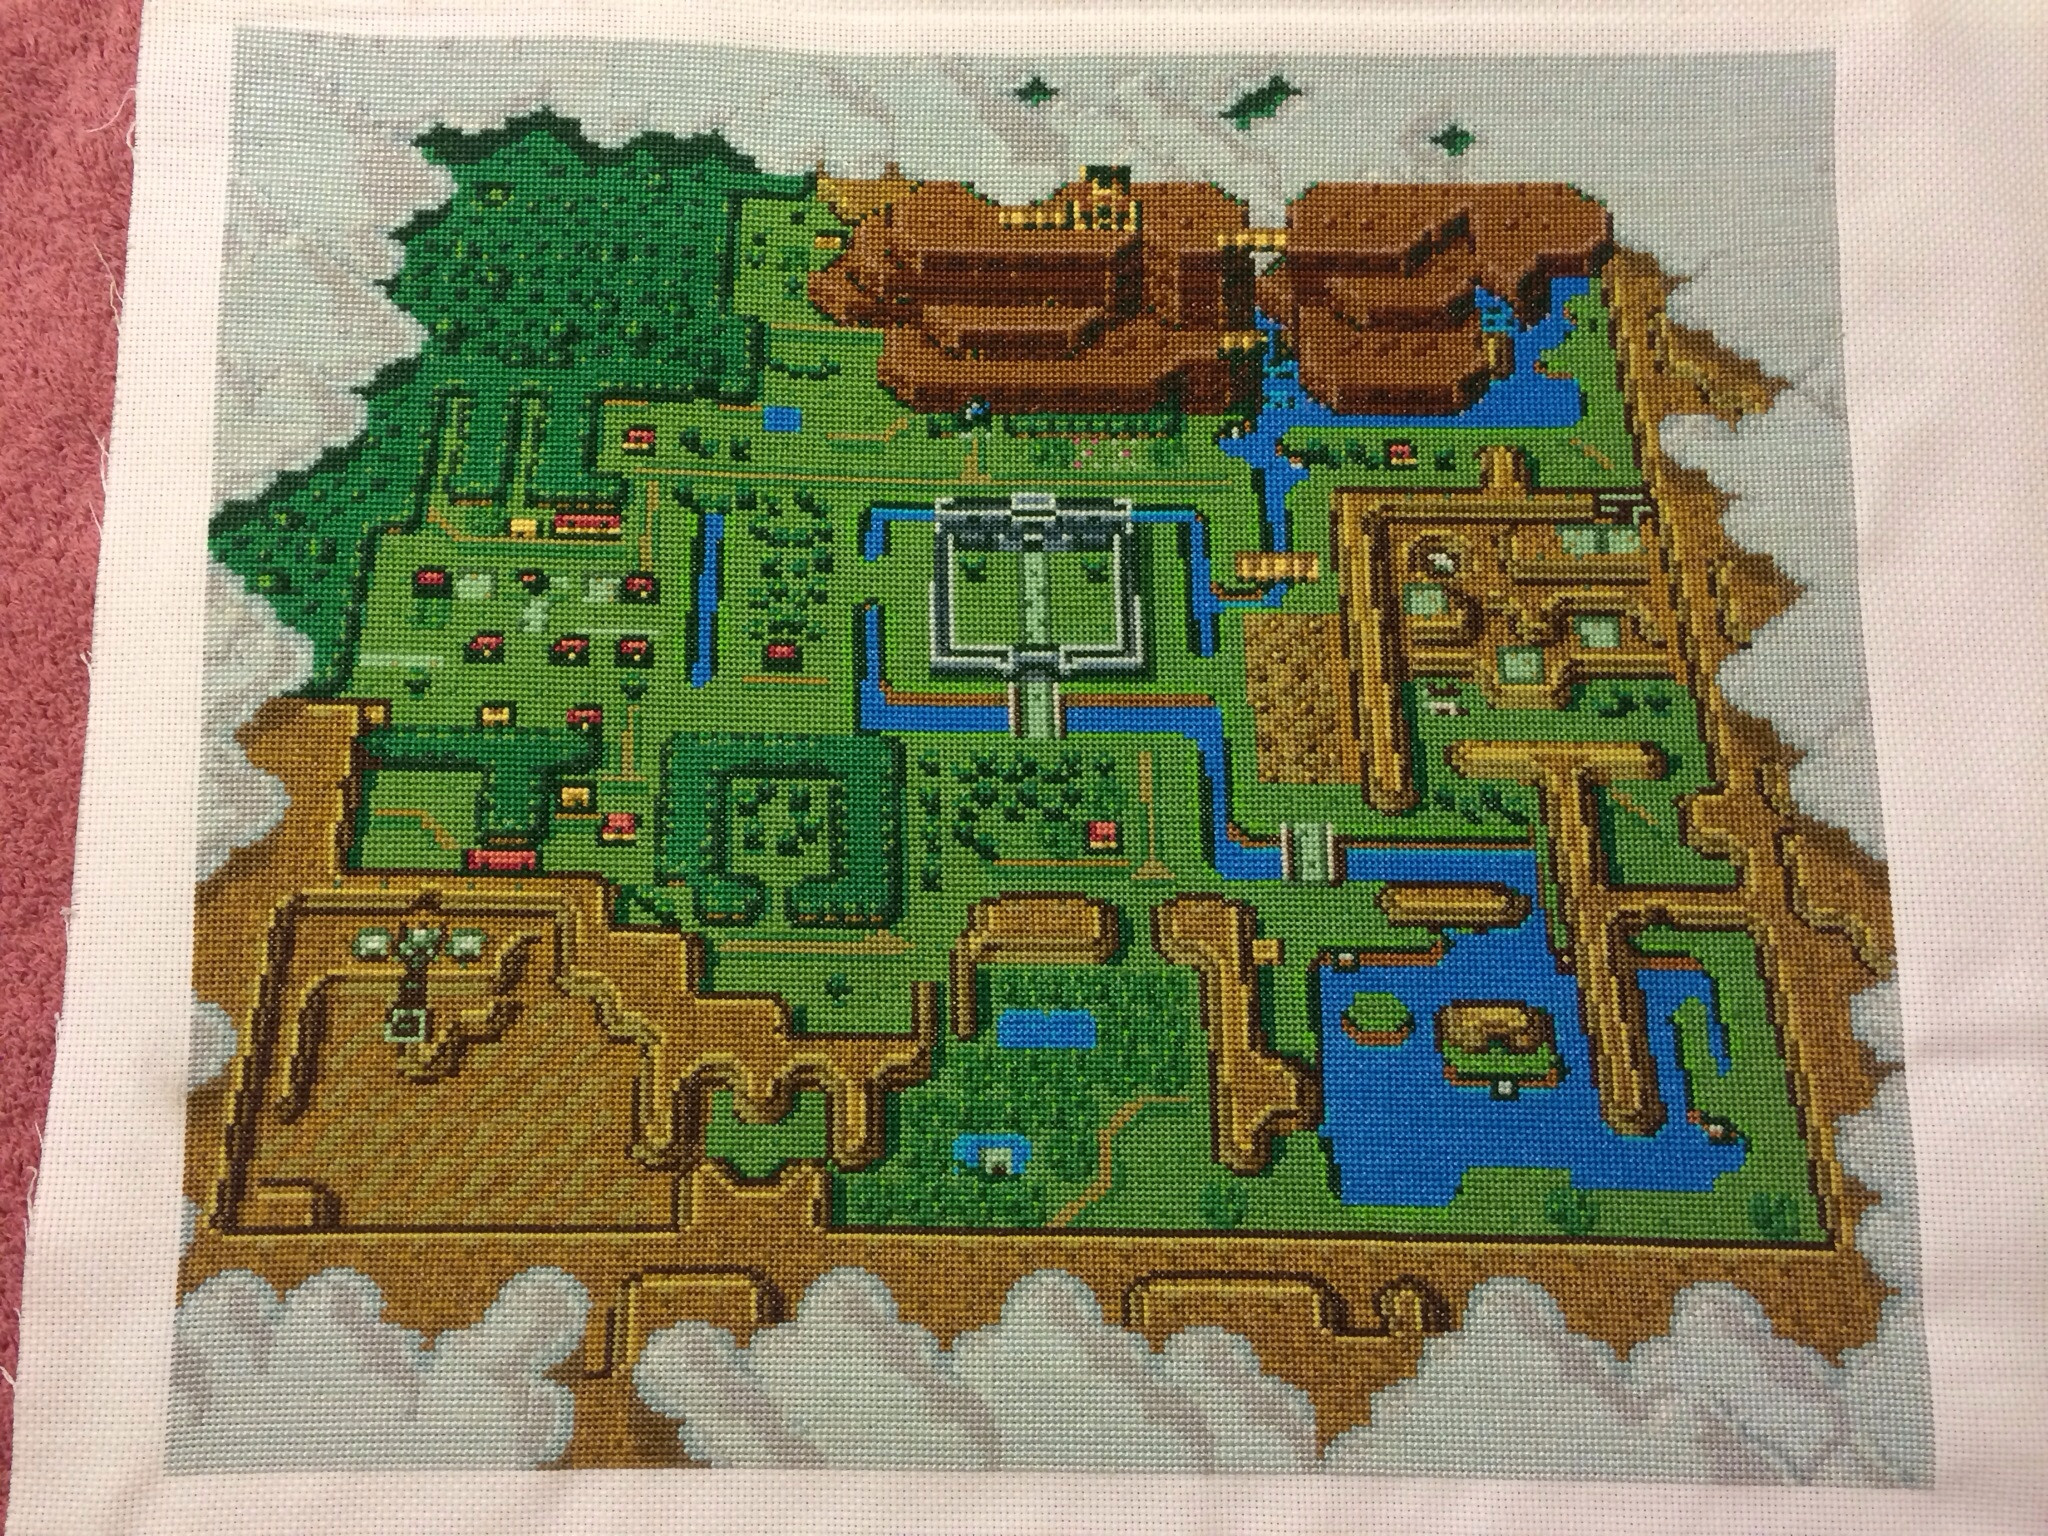 Legend of Zelda Map Cross-Stitch